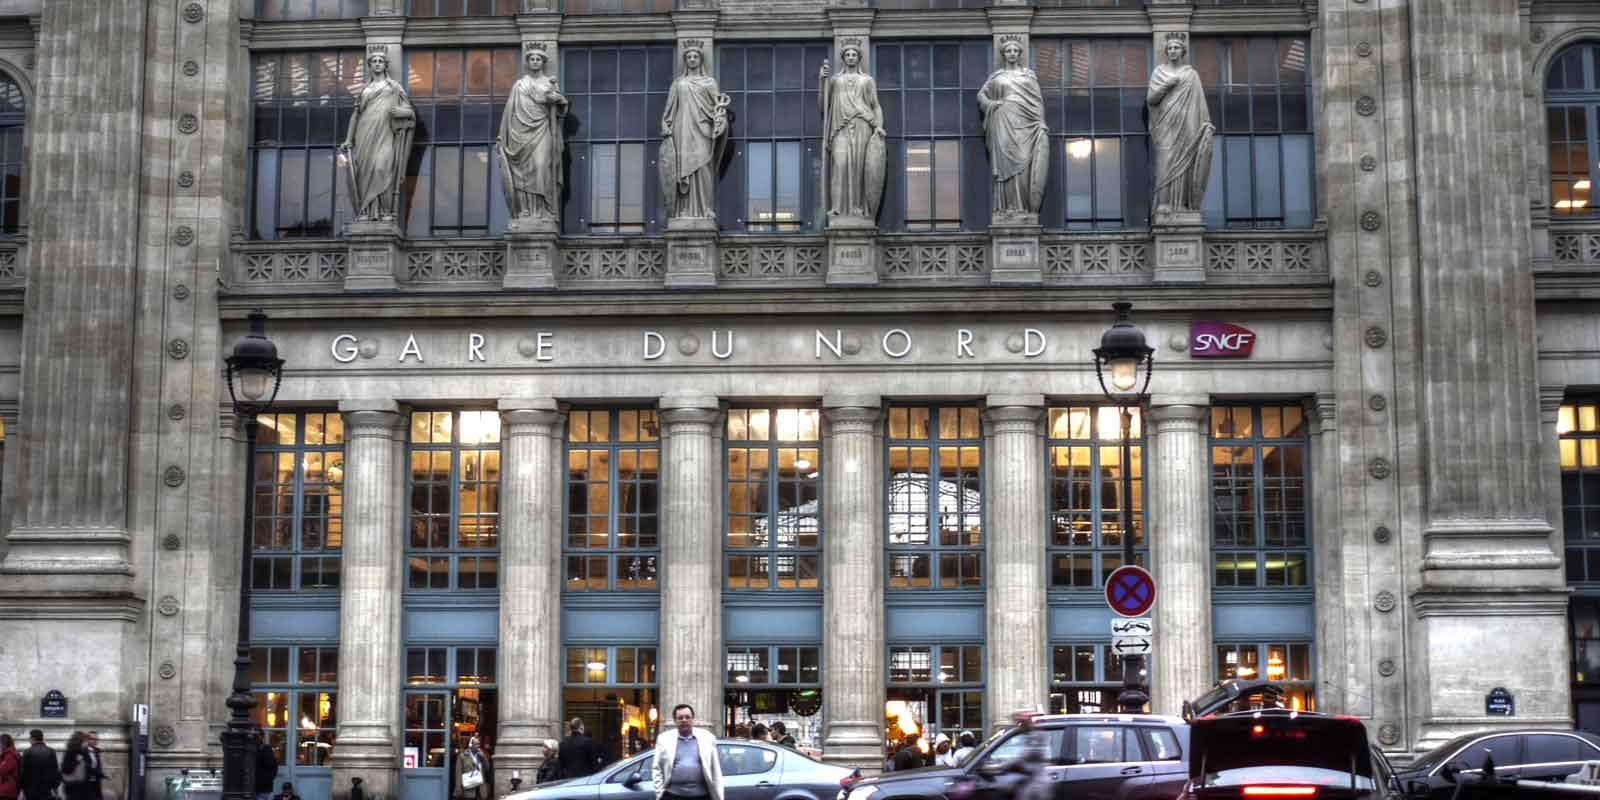 Landscape view of the outside of the Gare du Nord station in Paris, France.